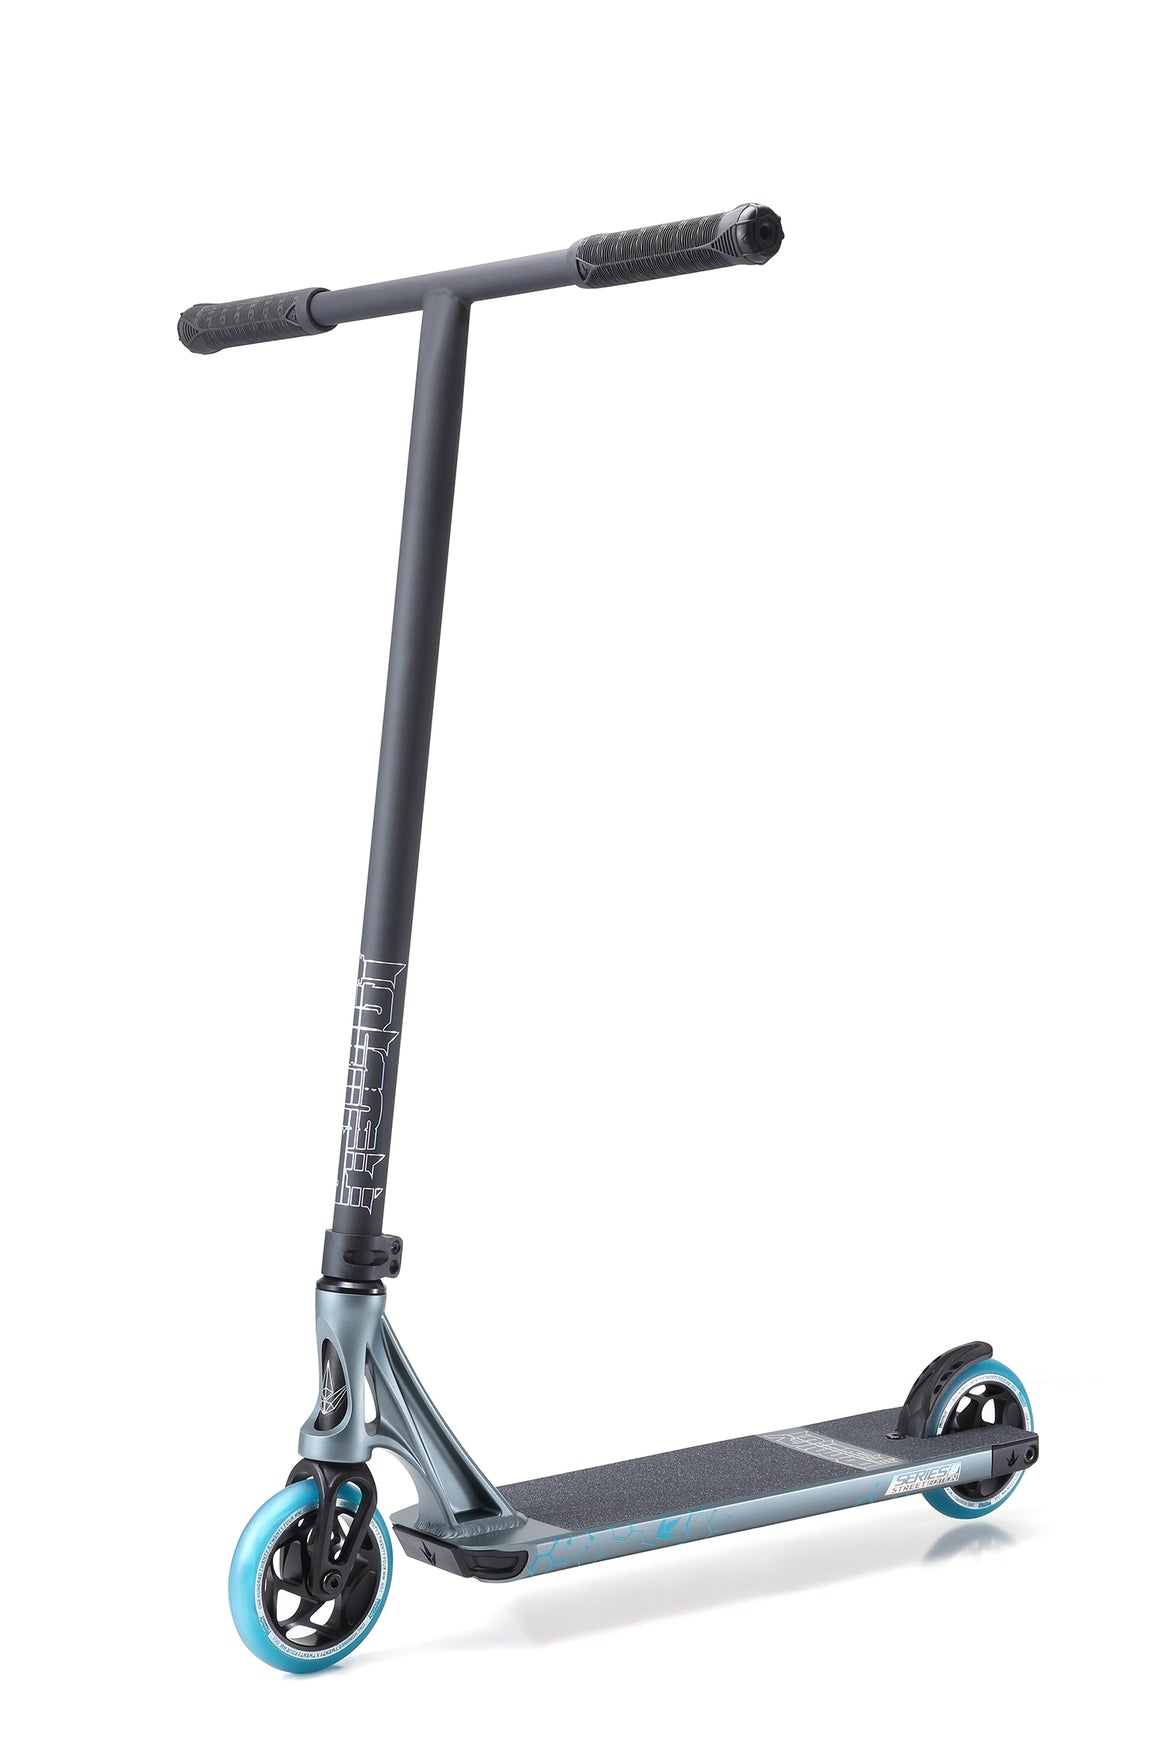 Envy Prodigy Series 8 Street Complete Scooter - Grey